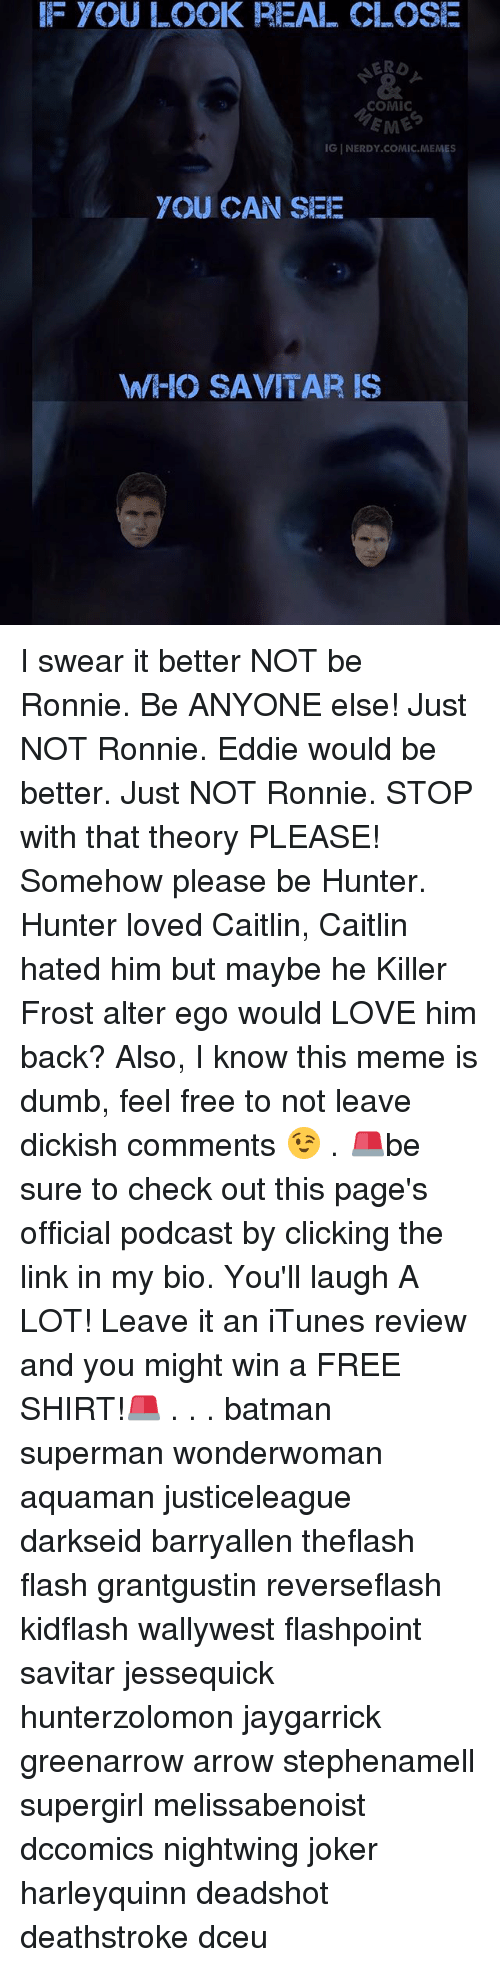 erd: IF YOU LOOK REAL CLOSE  ERD  COMIC  EME  IG NERDY COMIC MEMES  YOU CAN SEE  WHO SAVITAR IS I swear it better NOT be Ronnie. Be ANYONE else! Just NOT Ronnie. Eddie would be better. Just NOT Ronnie. STOP with that theory PLEASE! Somehow please be Hunter. Hunter loved Caitlin, Caitlin hated him but maybe he Killer Frost alter ego would LOVE him back? Also, I know this meme is dumb, feel free to not leave dickish comments 😉 . 🚨be sure to check out this page's official podcast by clicking the link in my bio. You'll laugh A LOT! Leave it an iTunes review and you might win a FREE SHIRT!🚨 . . . batman superman wonderwoman aquaman justiceleague darkseid barryallen theflash flash grantgustin reverseflash kidflash wallywest flashpoint savitar jessequick hunterzolomon jaygarrick greenarrow arrow stephenamell supergirl melissabenoist dccomics nightwing joker harleyquinn deadshot deathstroke dceu